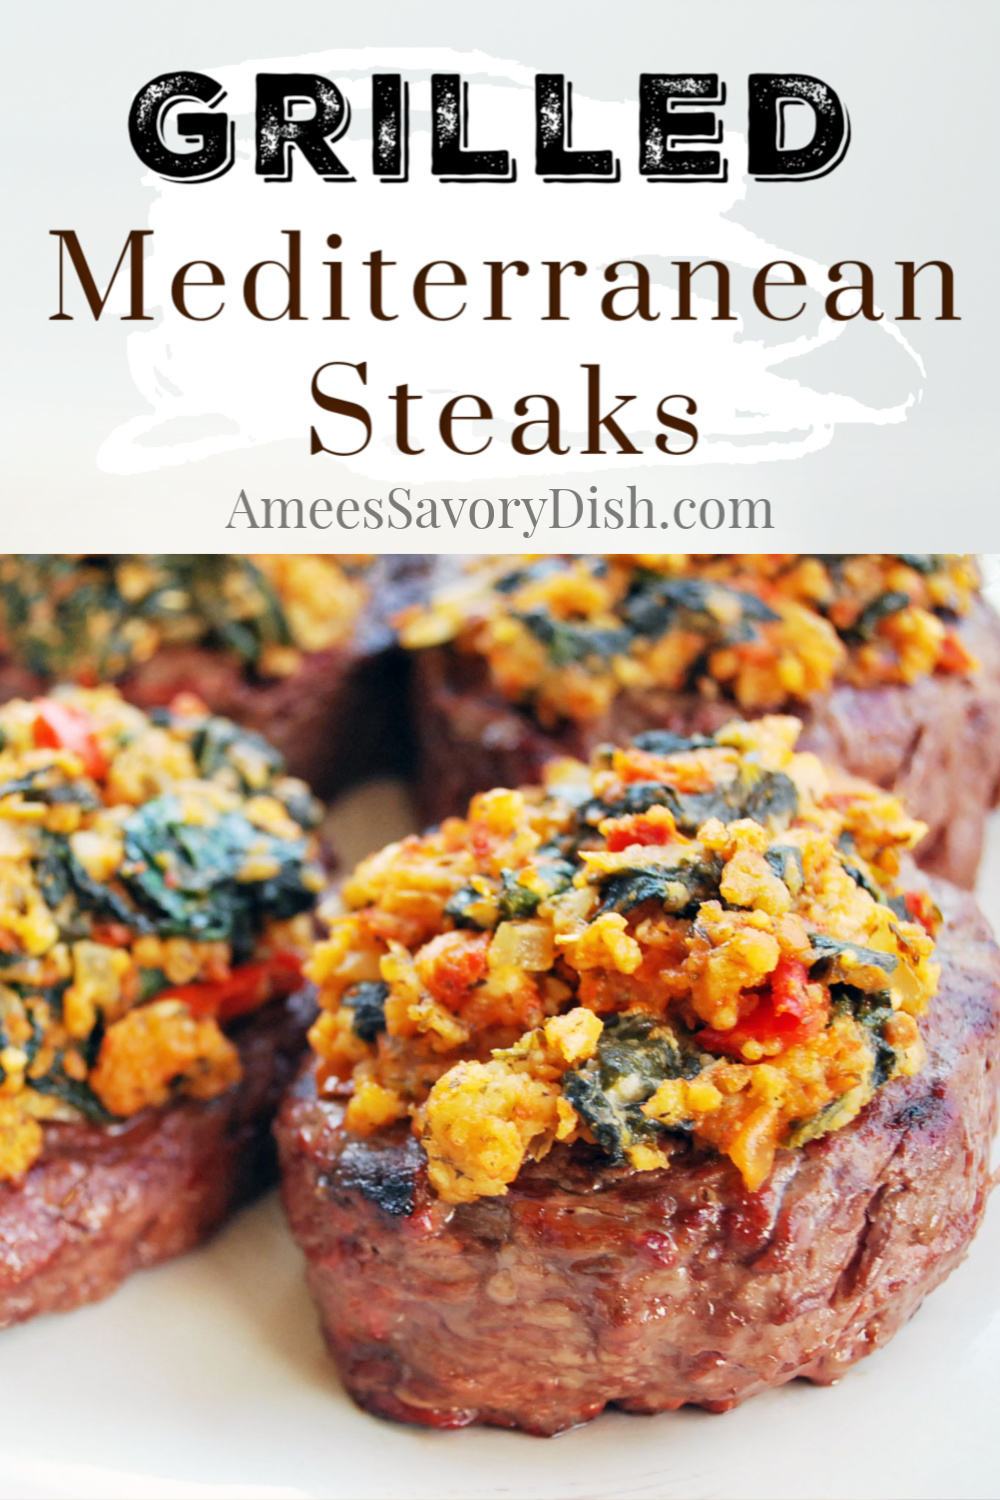 Mediterranean grilled sirloin steaks are a delicious and flavor-packed lean beef dinner. They're tender beef steaks with a mixture of spinach, feta cheese, sun-dried tomato pesto, and seasonings on top. #grilledsirloin #grilledsteak #steakrecipe #mediterraneansteak via @Ameessavorydish